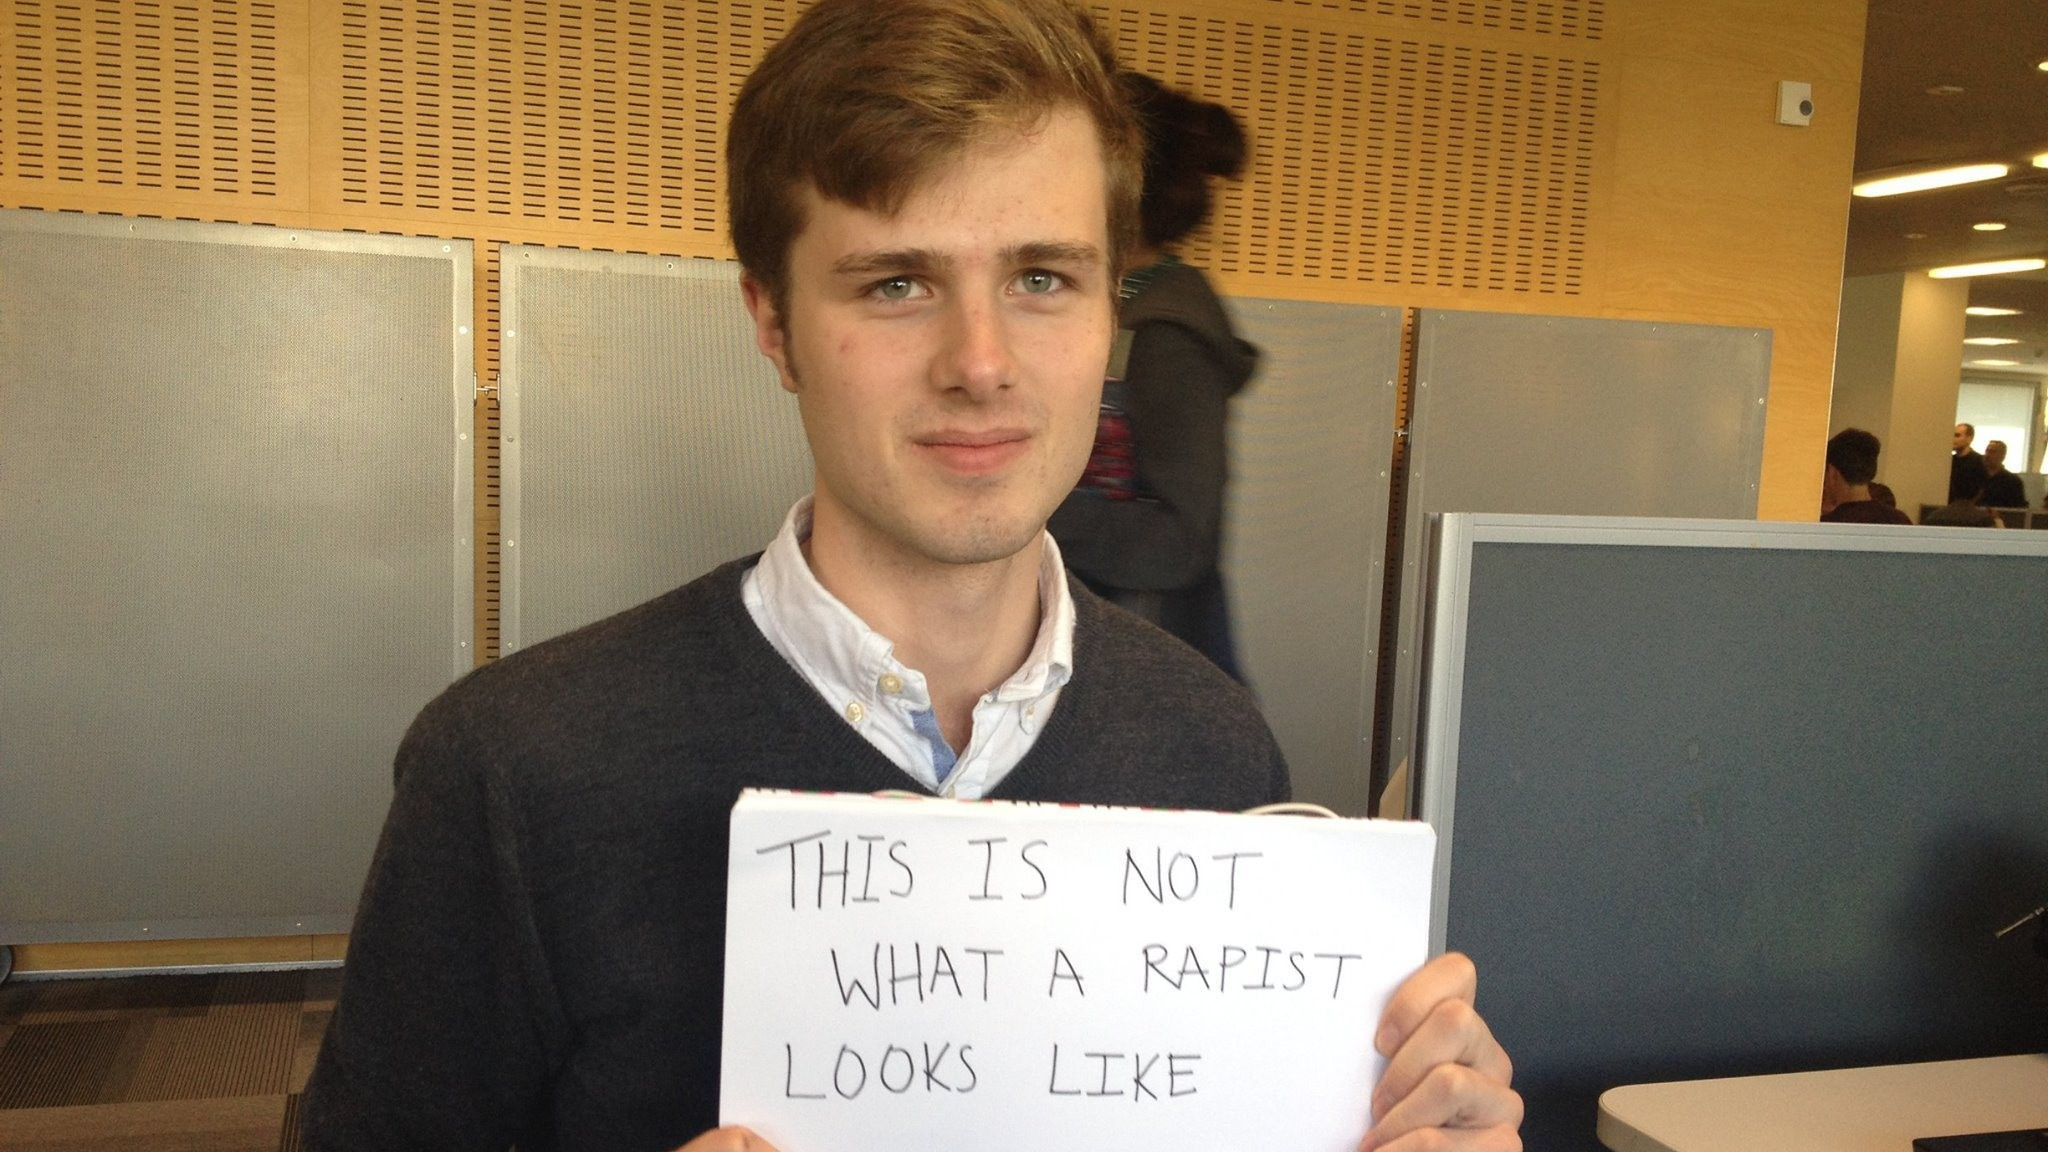 The 'This Is Not What a Rapist Looks Like' Guy Tries to Explain Himself